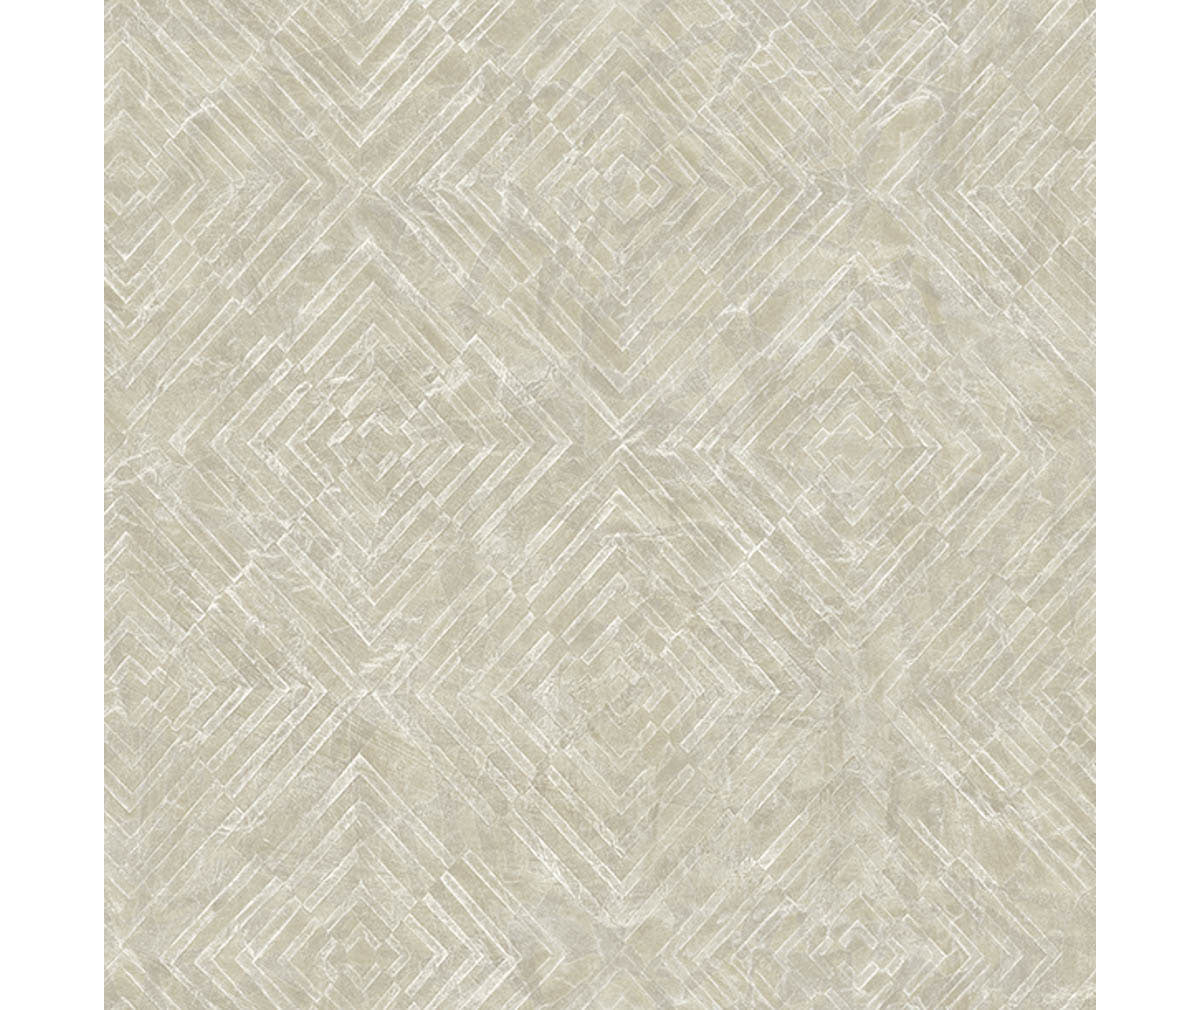 Labyrinth Platinum Geometric Wallpaper available at Barrydowne Paint